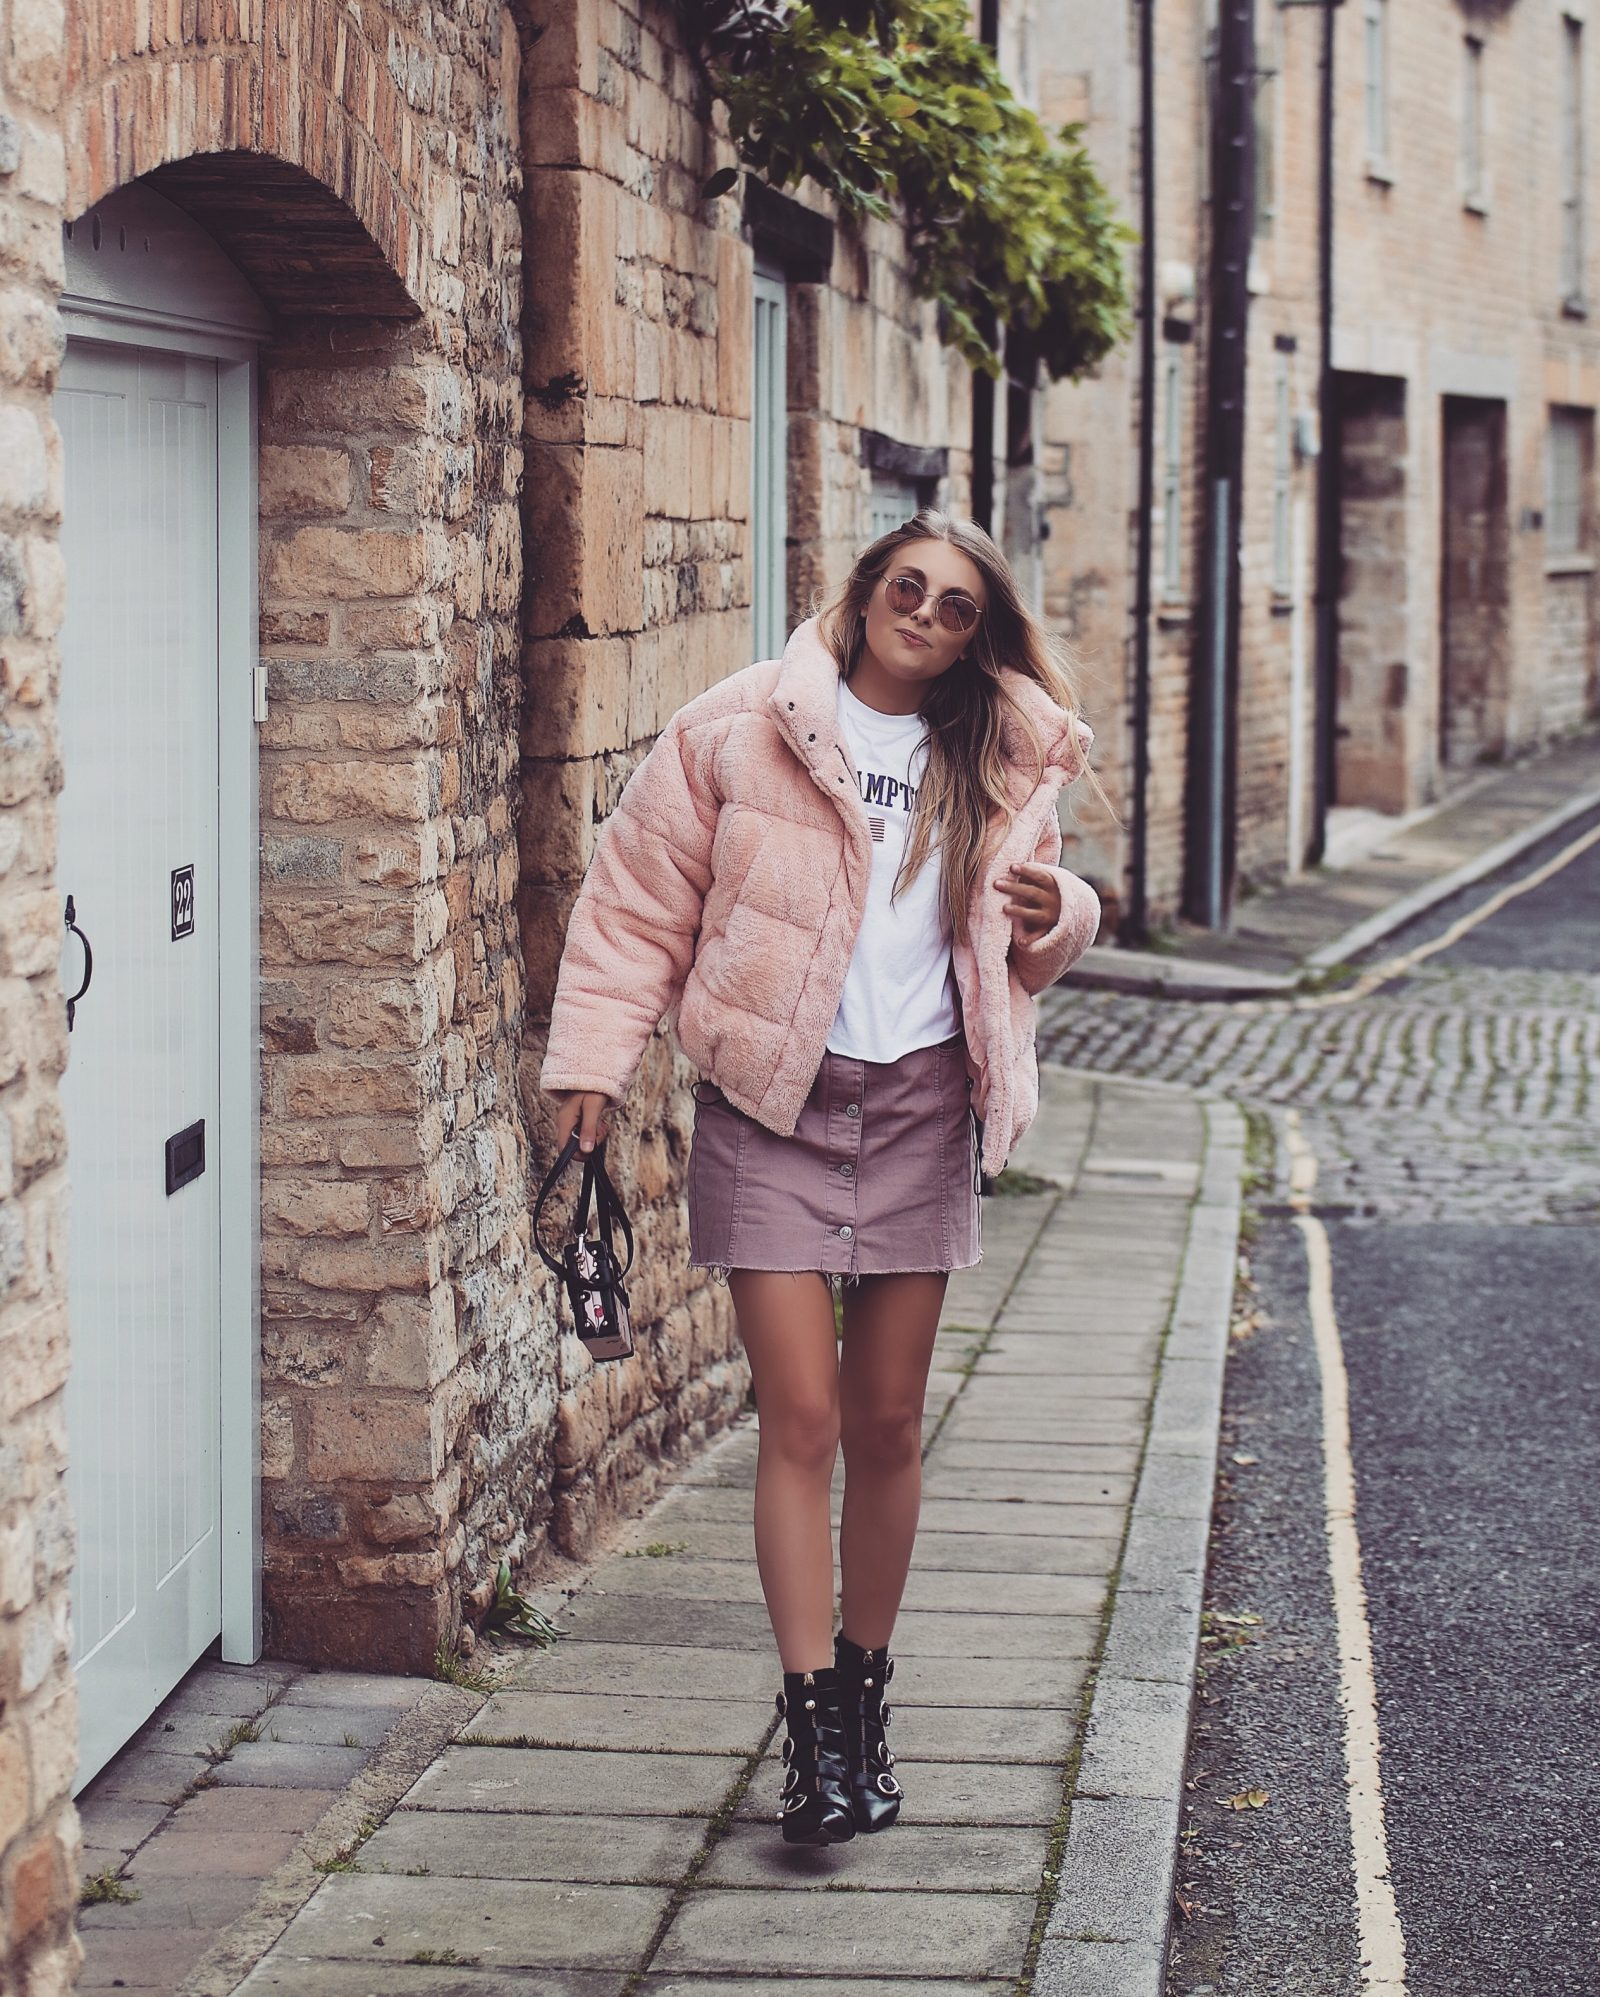 Teddy Puffa Jacket - Fall Outfit Inspiration